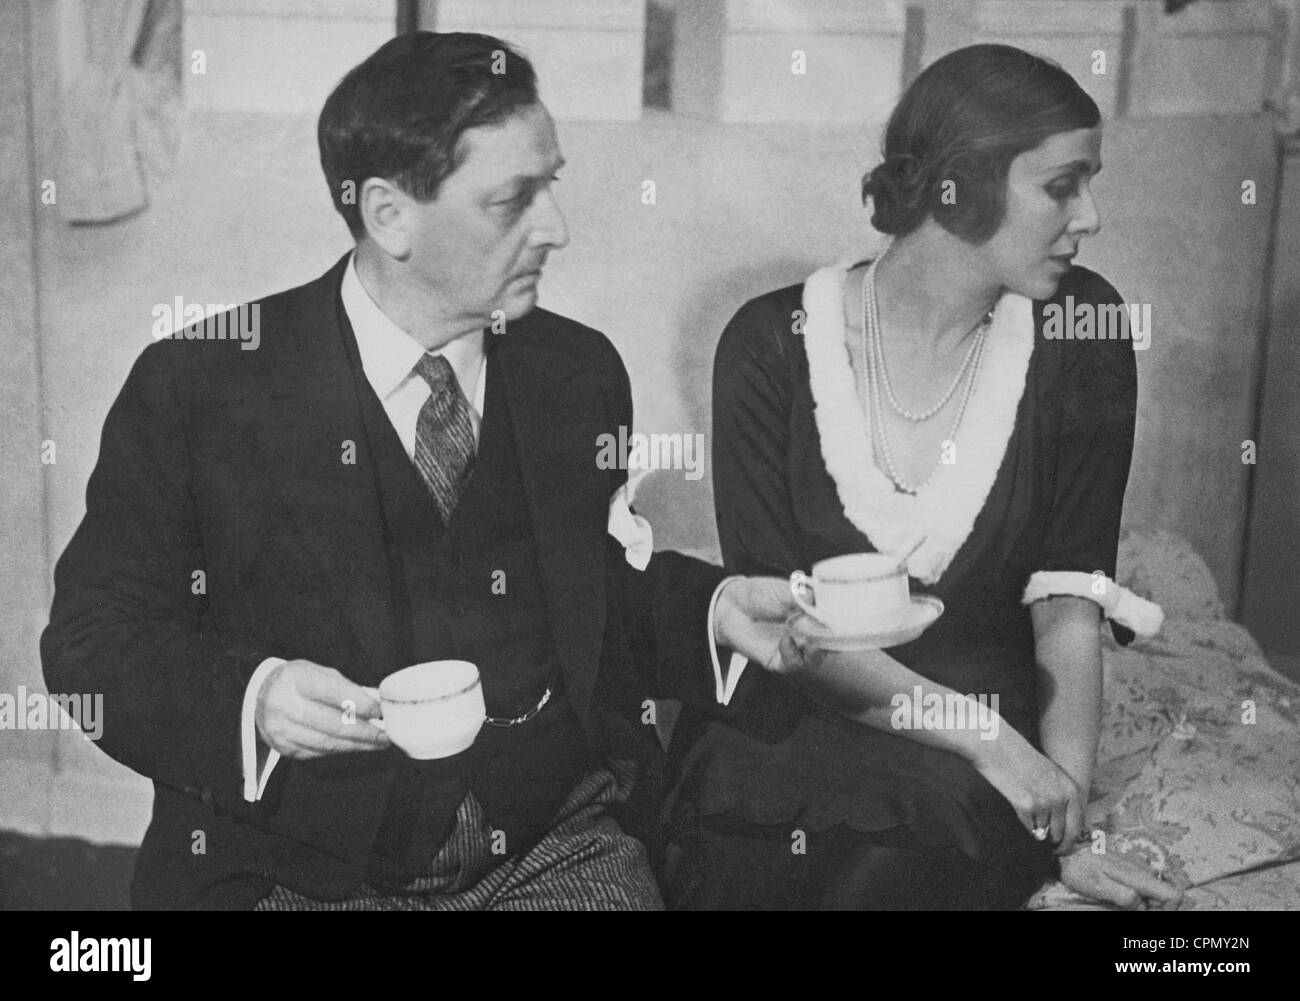 Hans Moser and Lili Darres in 'Pariser Platz 13' in the chamber theater at the Deutsches Theater, 1931 - Stock Image